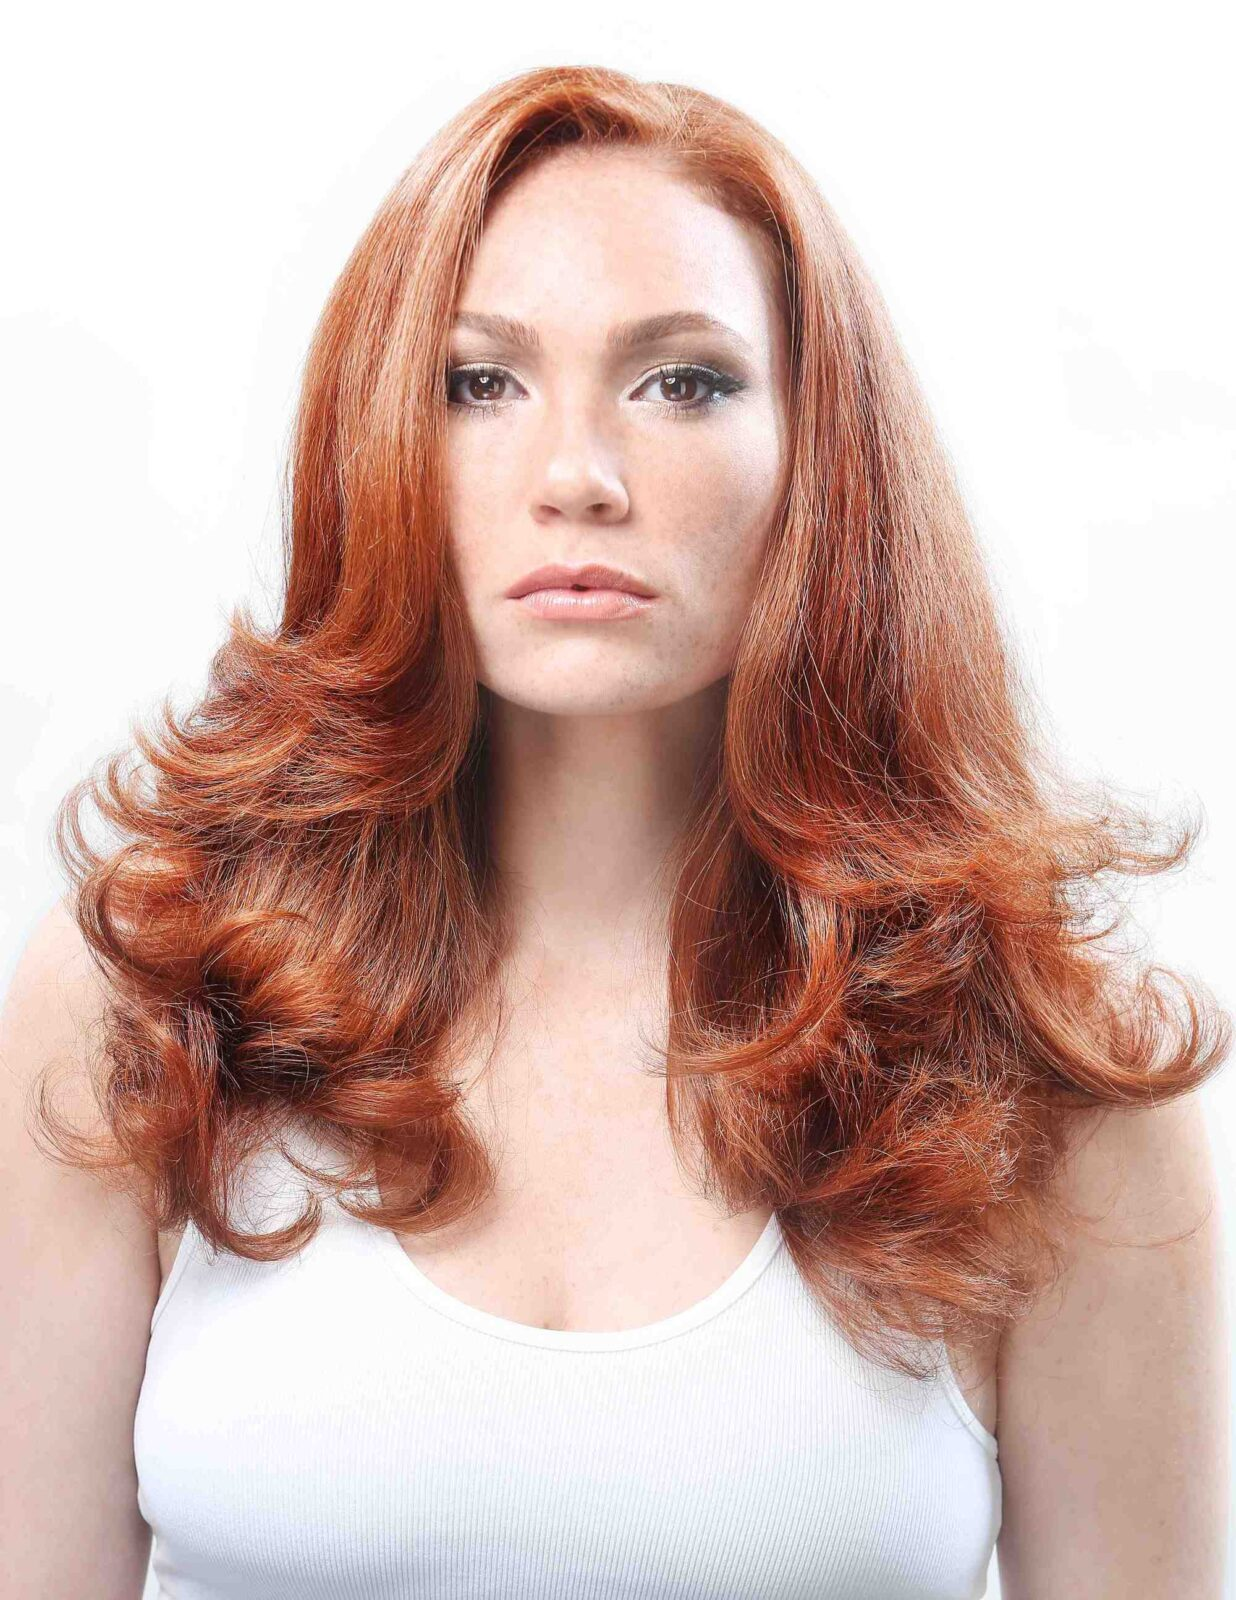 Red Hair Color Based On Your Age